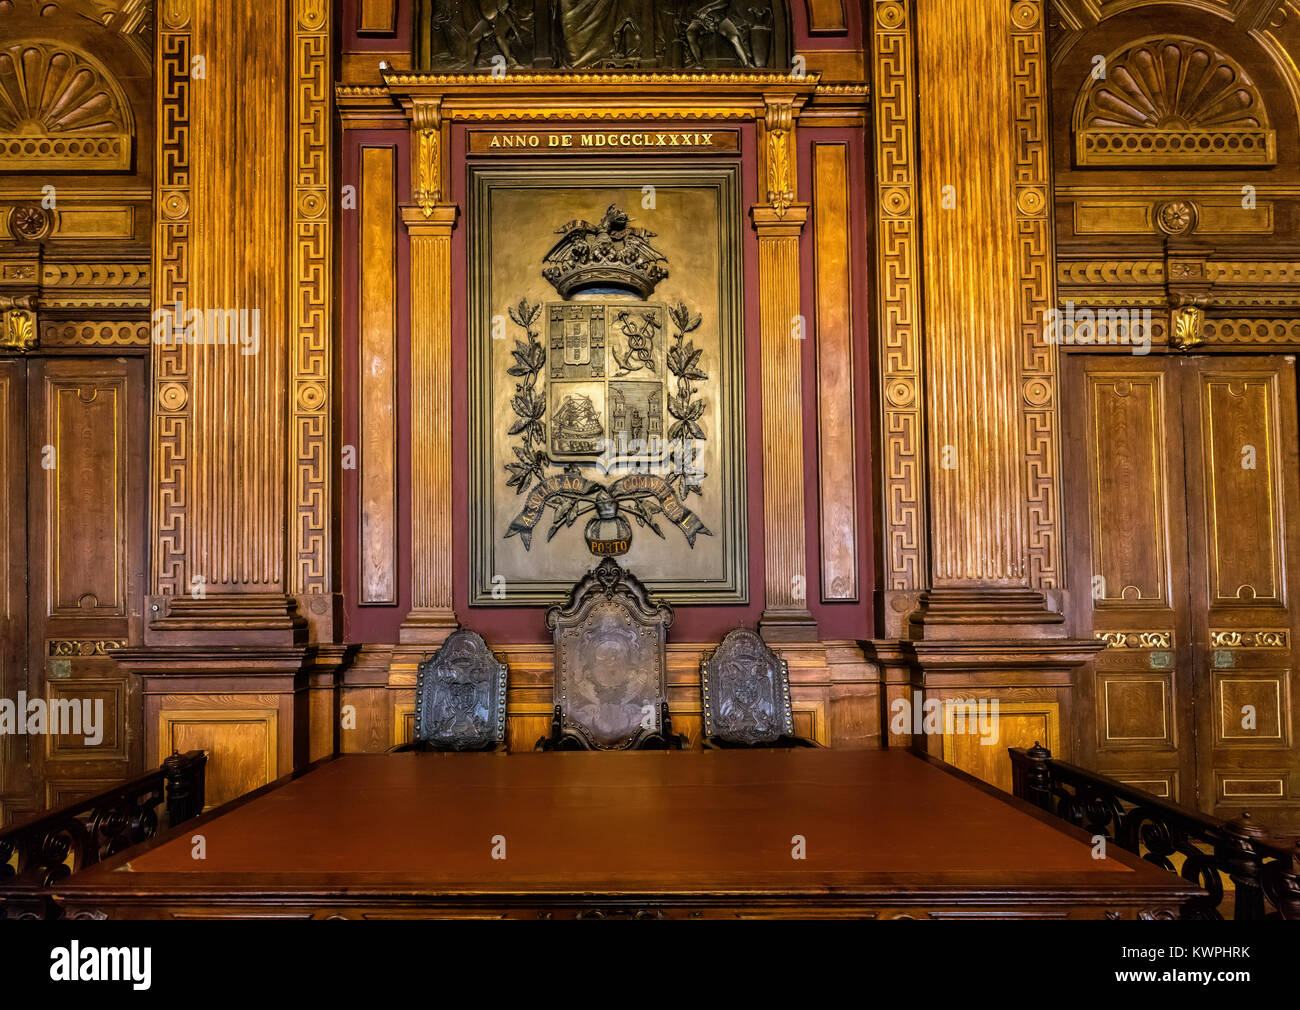 Porto, Portugal, August 15, 2017: Interior of the Neoclassical Bolsa Palace (Stock Exchange Palace) built in the - Stock Image